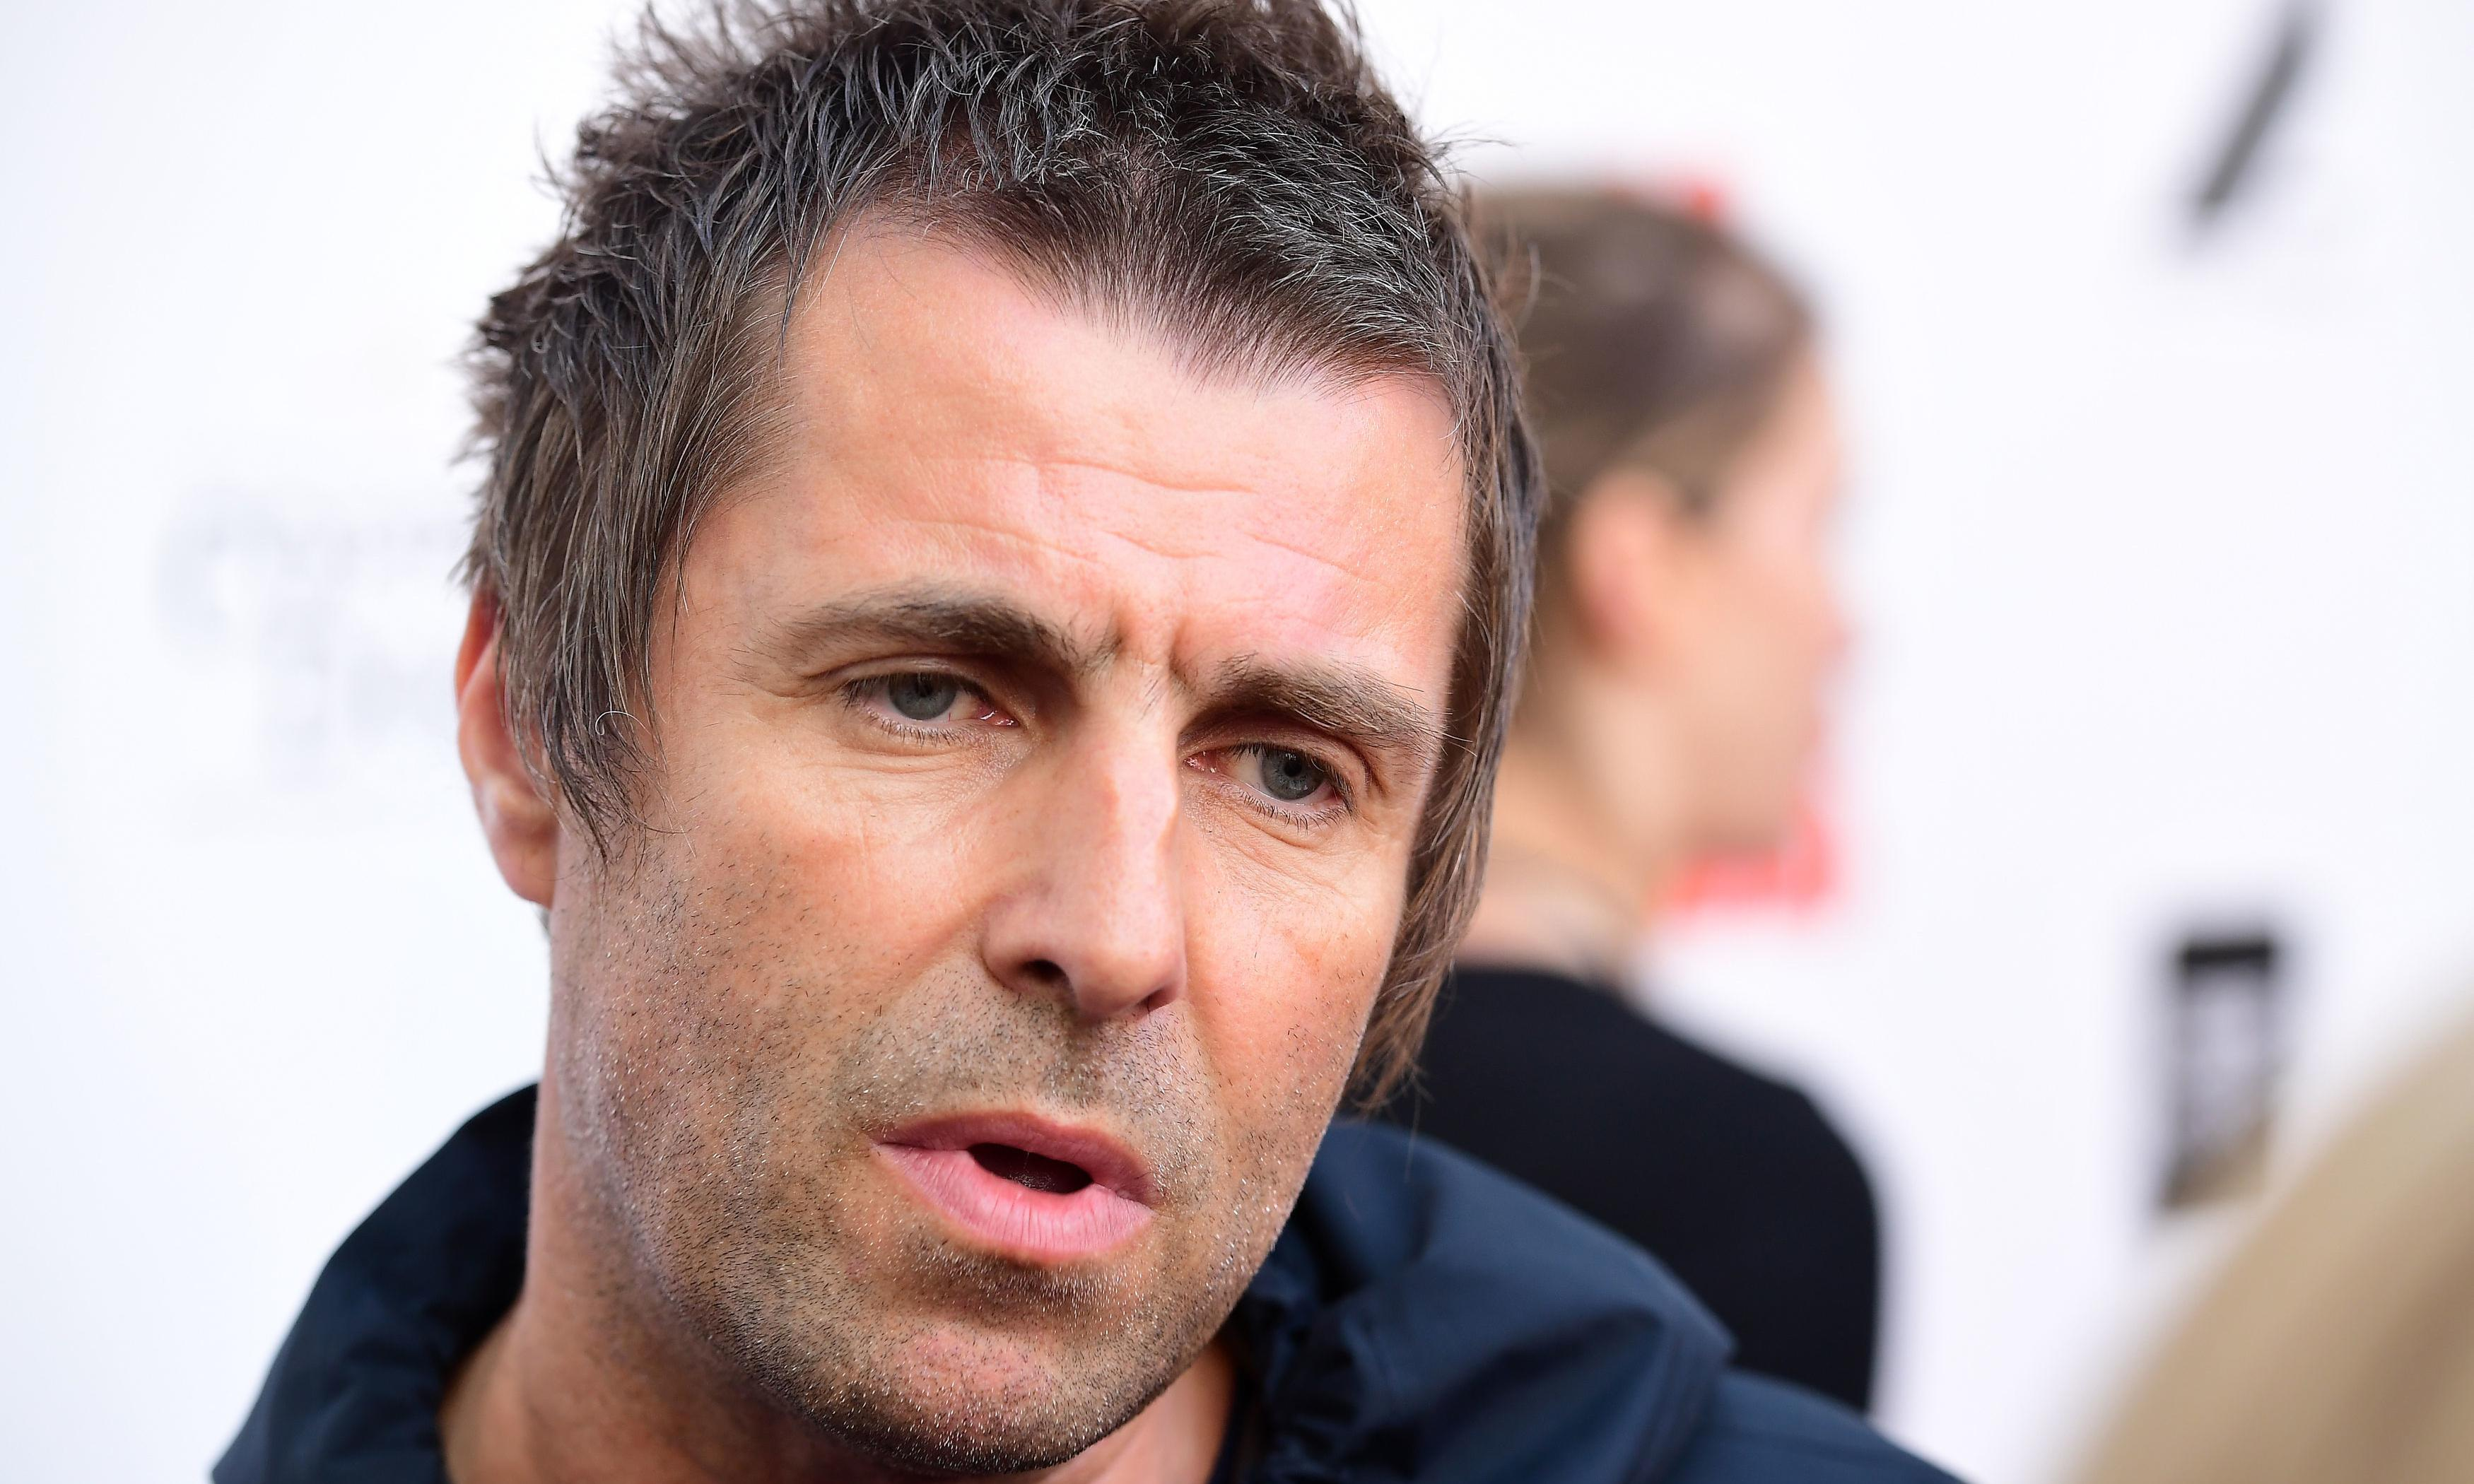 Liam Gallagher challenges Sadiq Khan over rise in knife crime